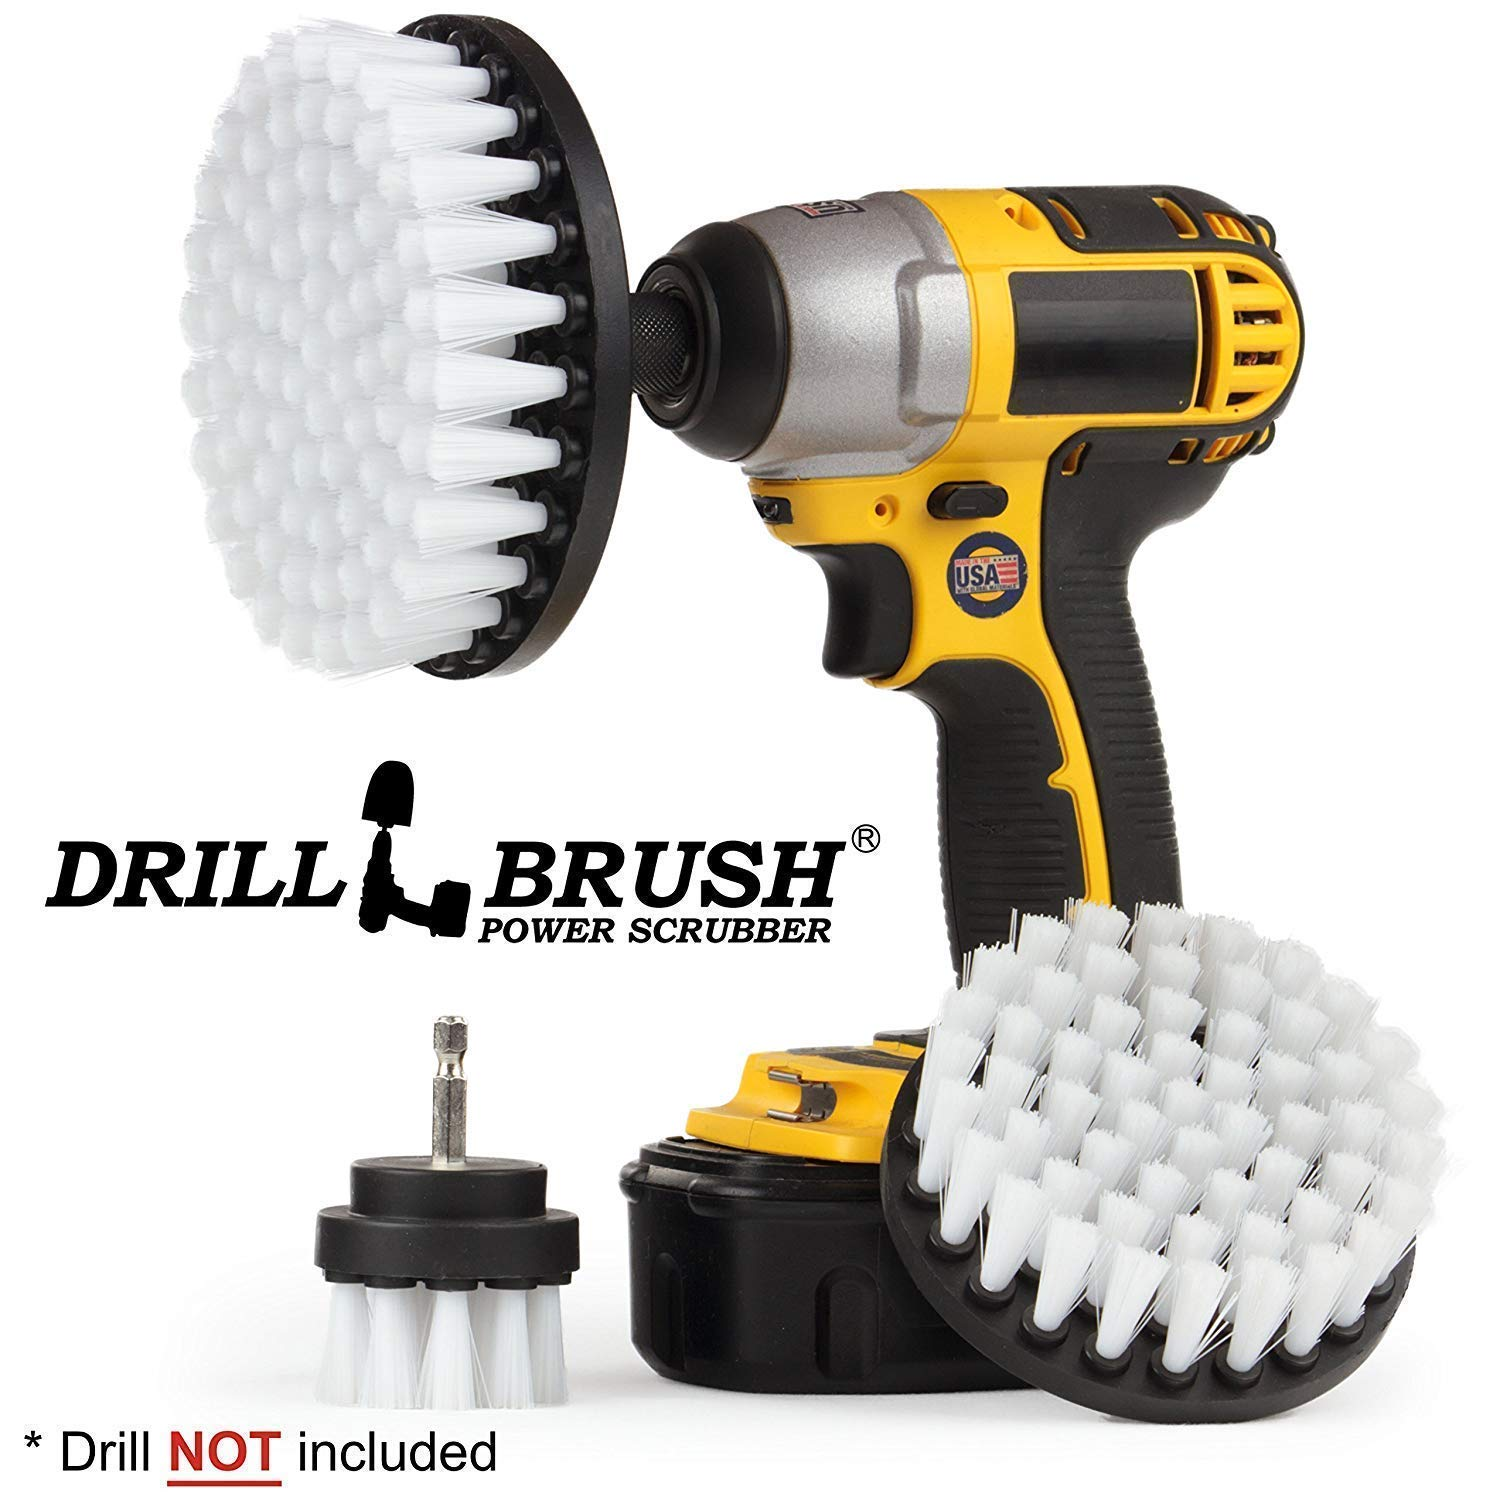 Cleaning Supplies - Drill Brush - Outdoor Power Scrub Brush Kit - Bird Bath - Garden Statues - Gnome - Outdoor Water Fountain - Monuments - Headstones - Granite Cleaner - Deck Brush - Algae, Mold Drillbrush R-S-542-QC-DB